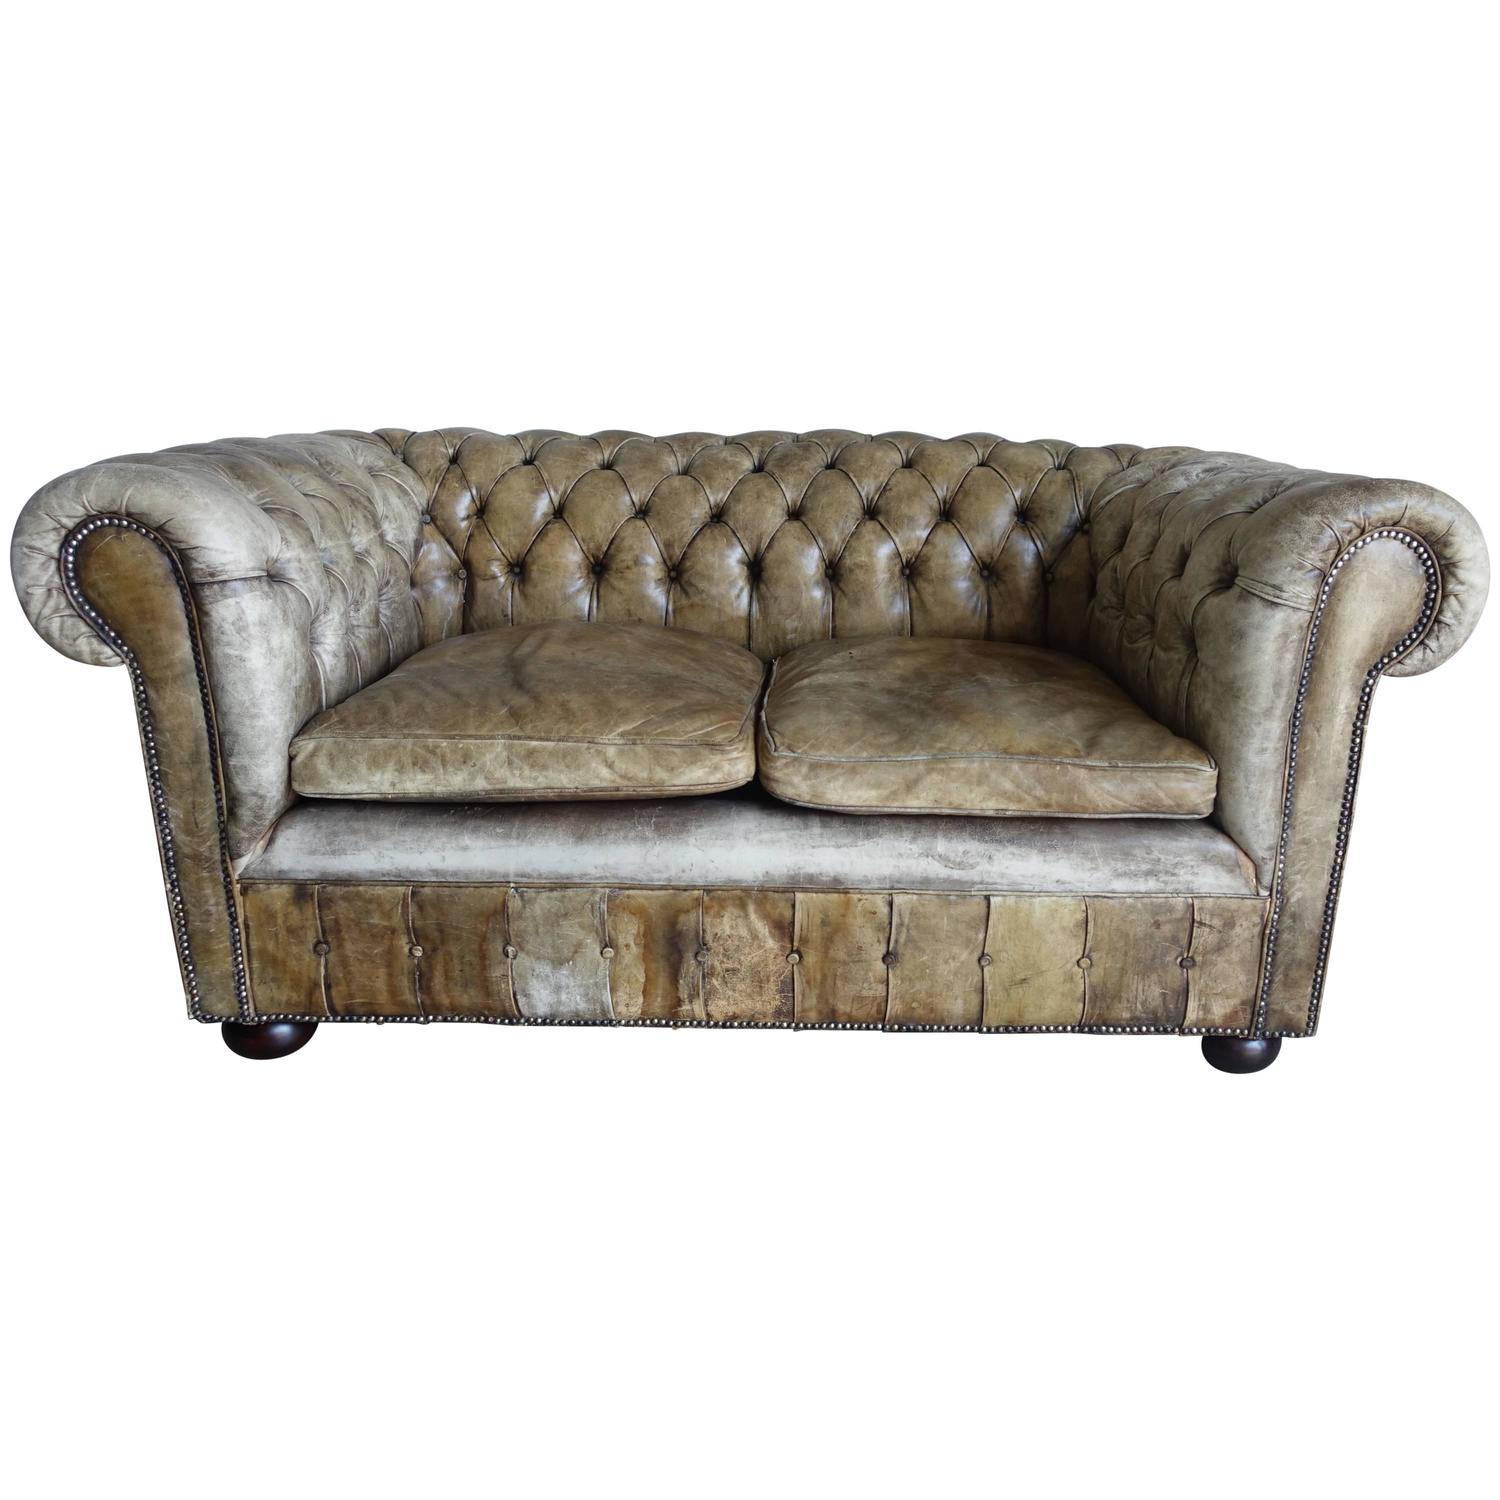 english chesterfield leather sofa circa 1900. Interior Design Ideas. Home Design Ideas